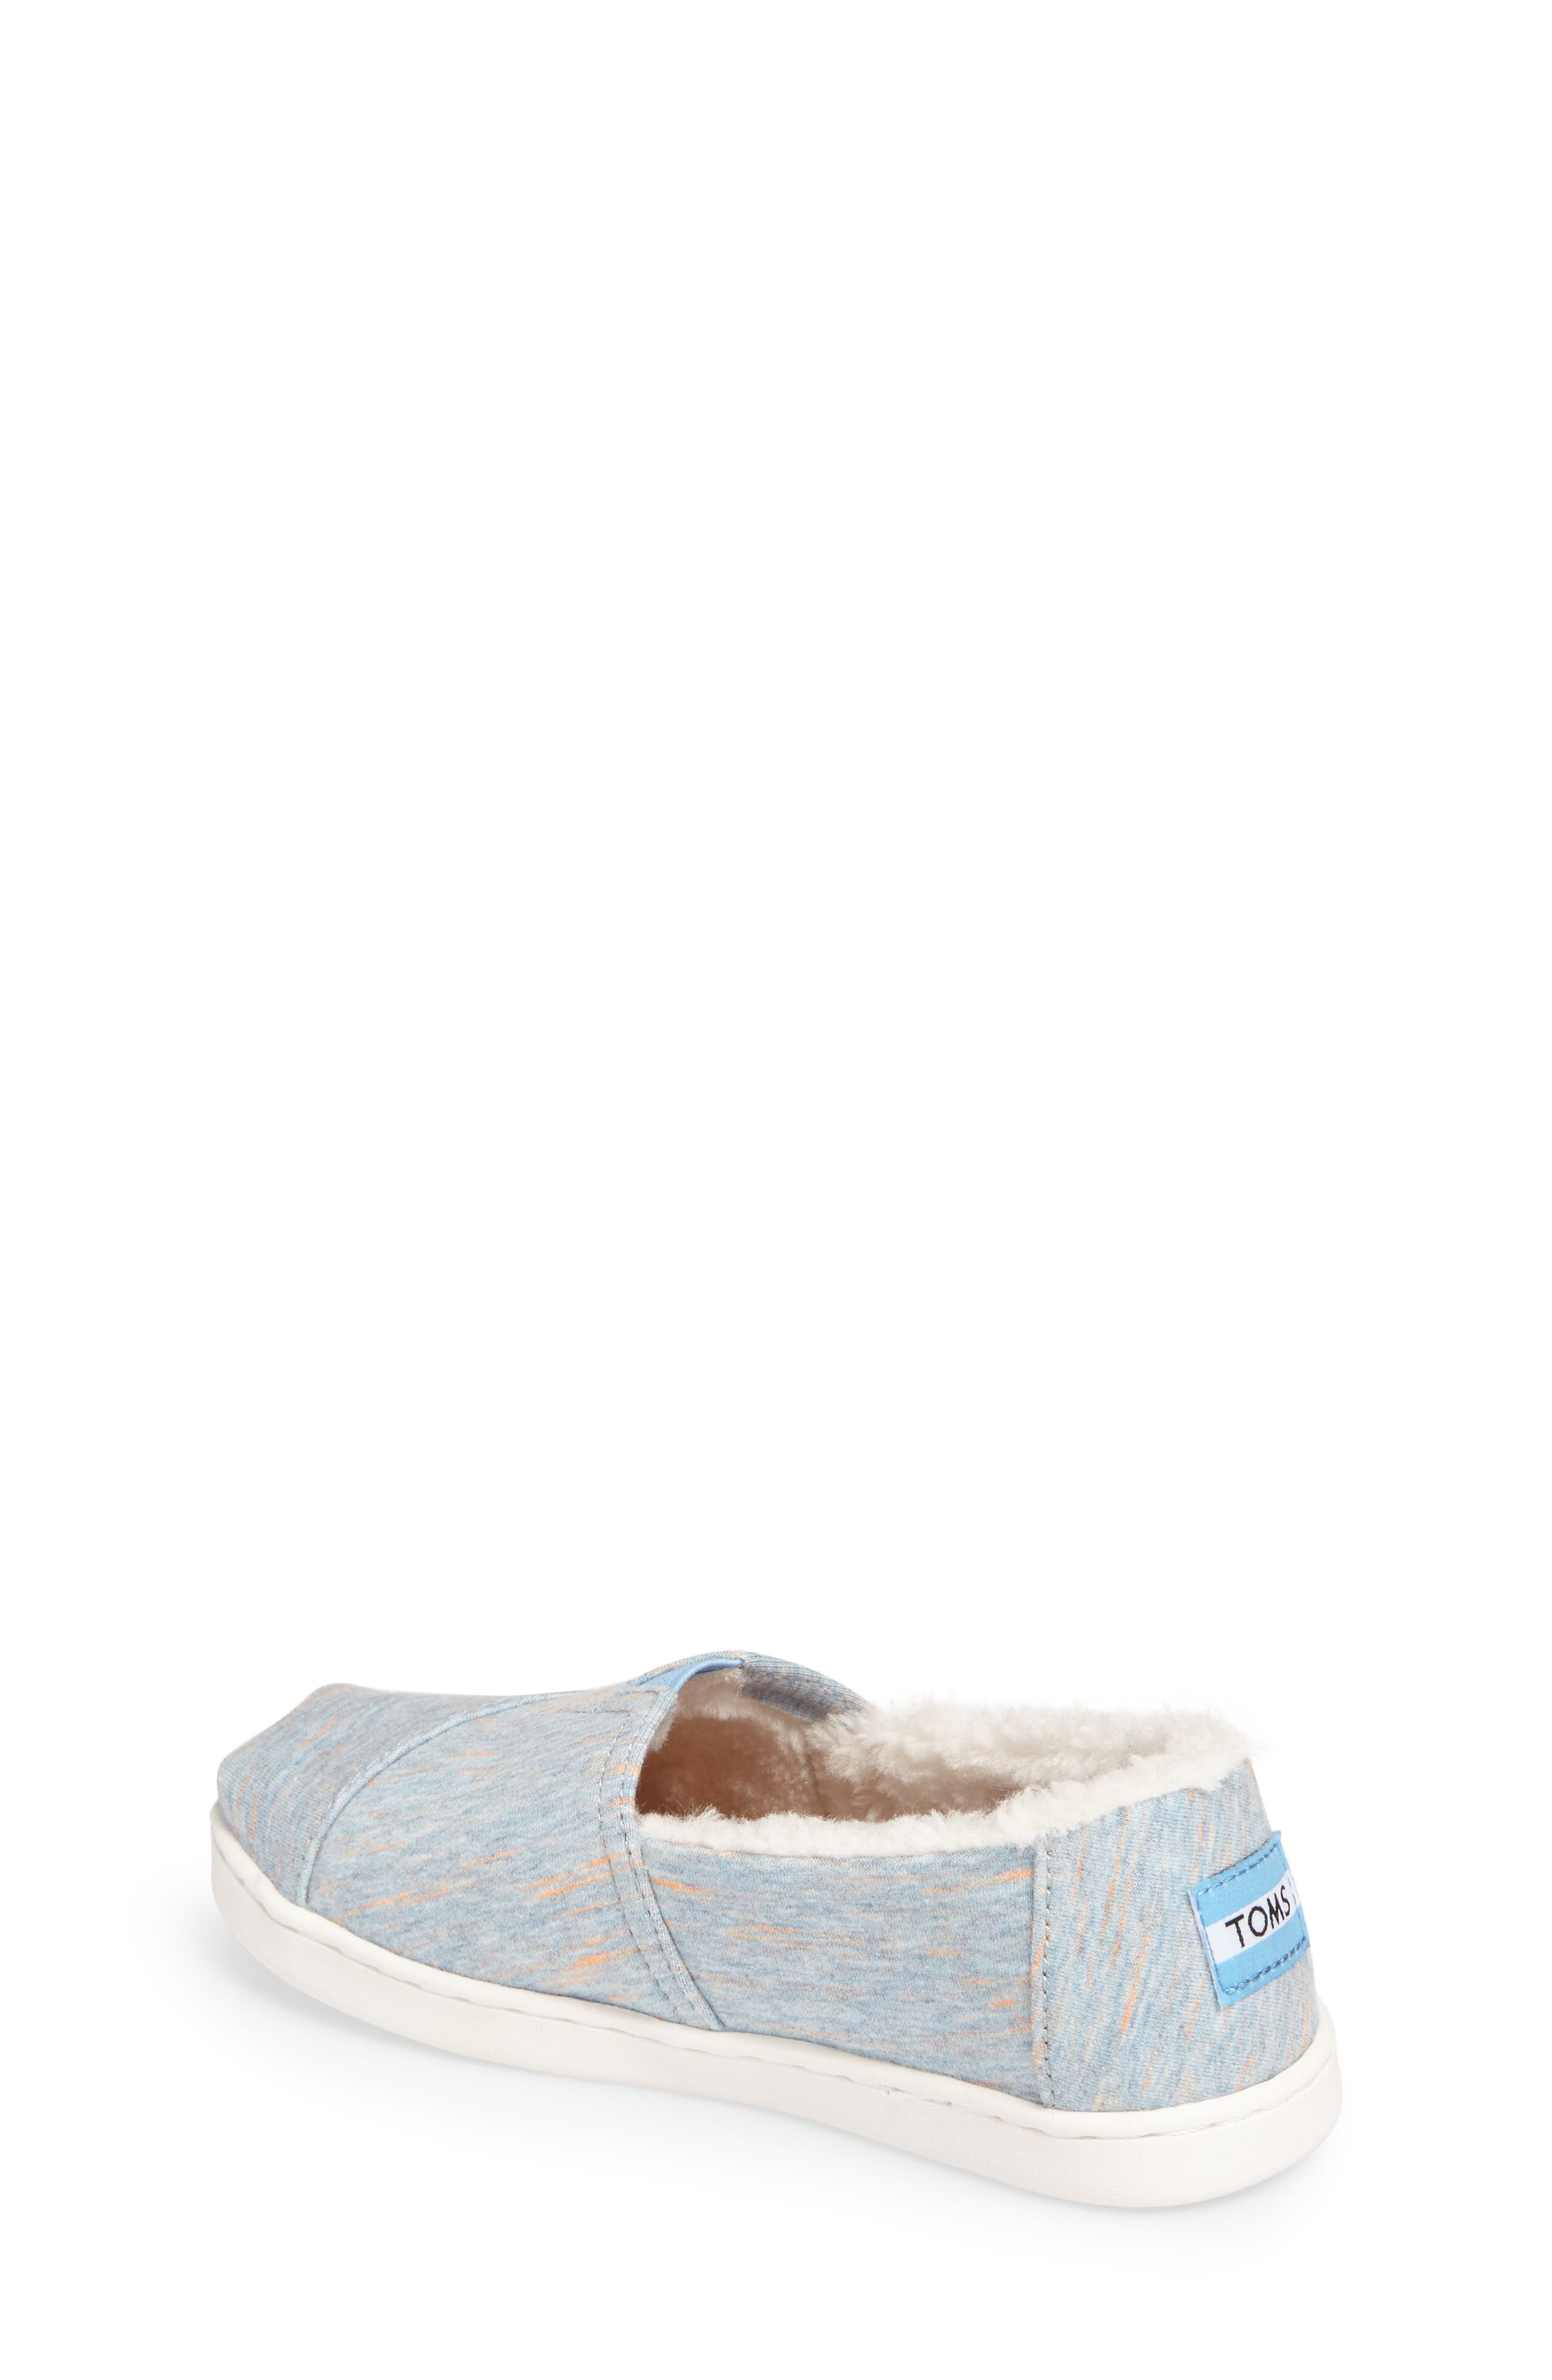 1d713335b76e97 TOMS for Kids